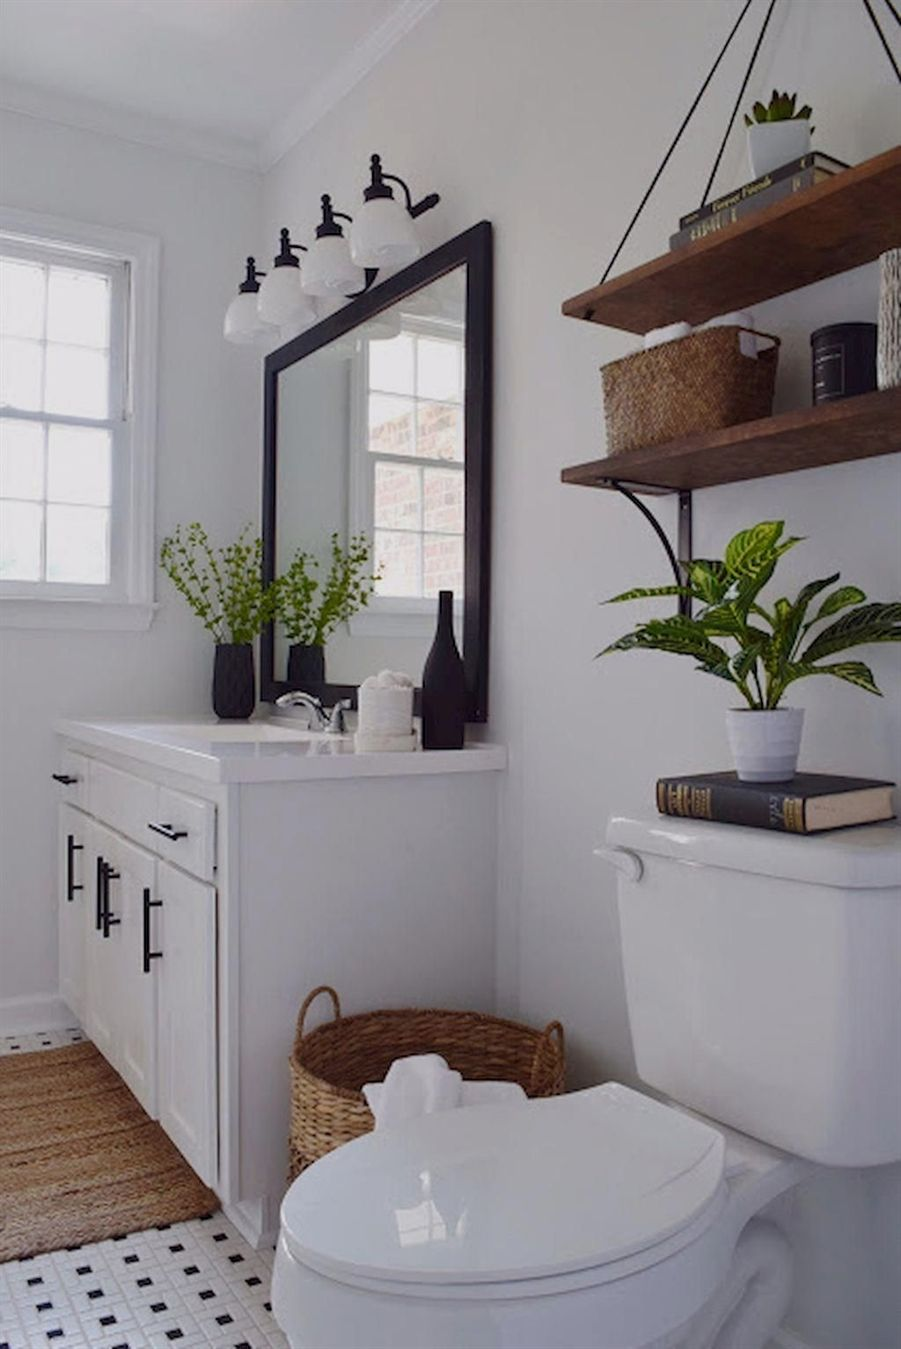 Average Cost Of Bathroom Remodel Per Square Foot Bathroomdeco